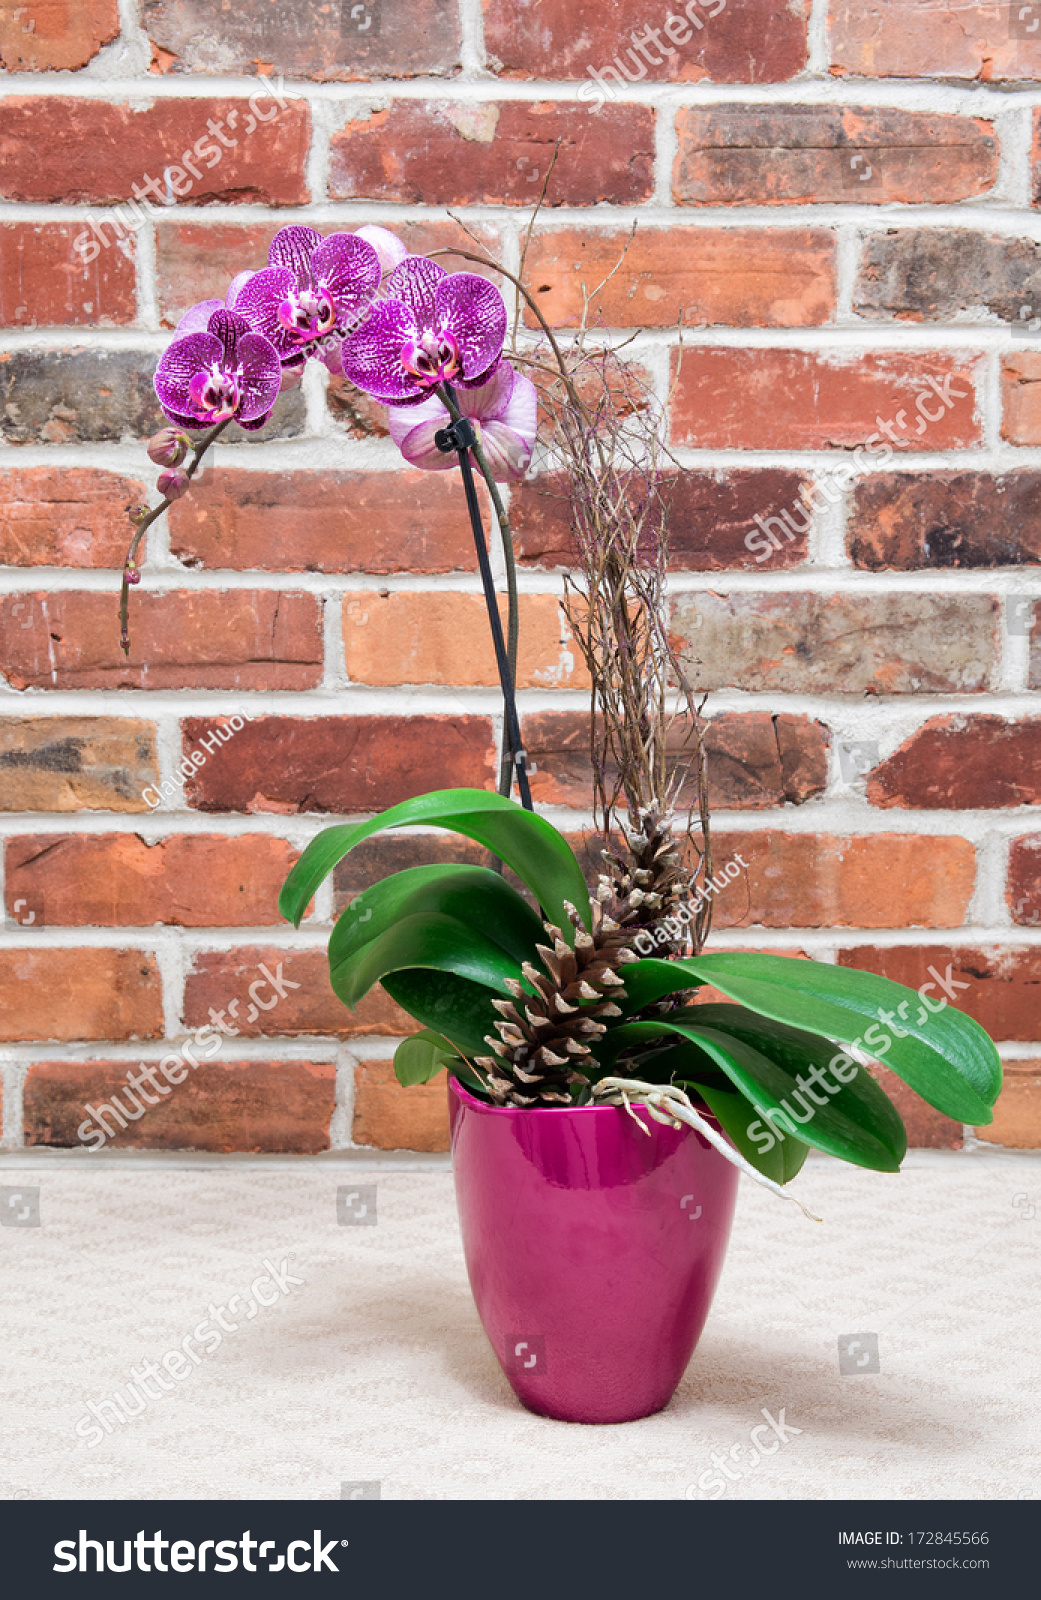 Phalaenopsis Orchids in front of brick wall